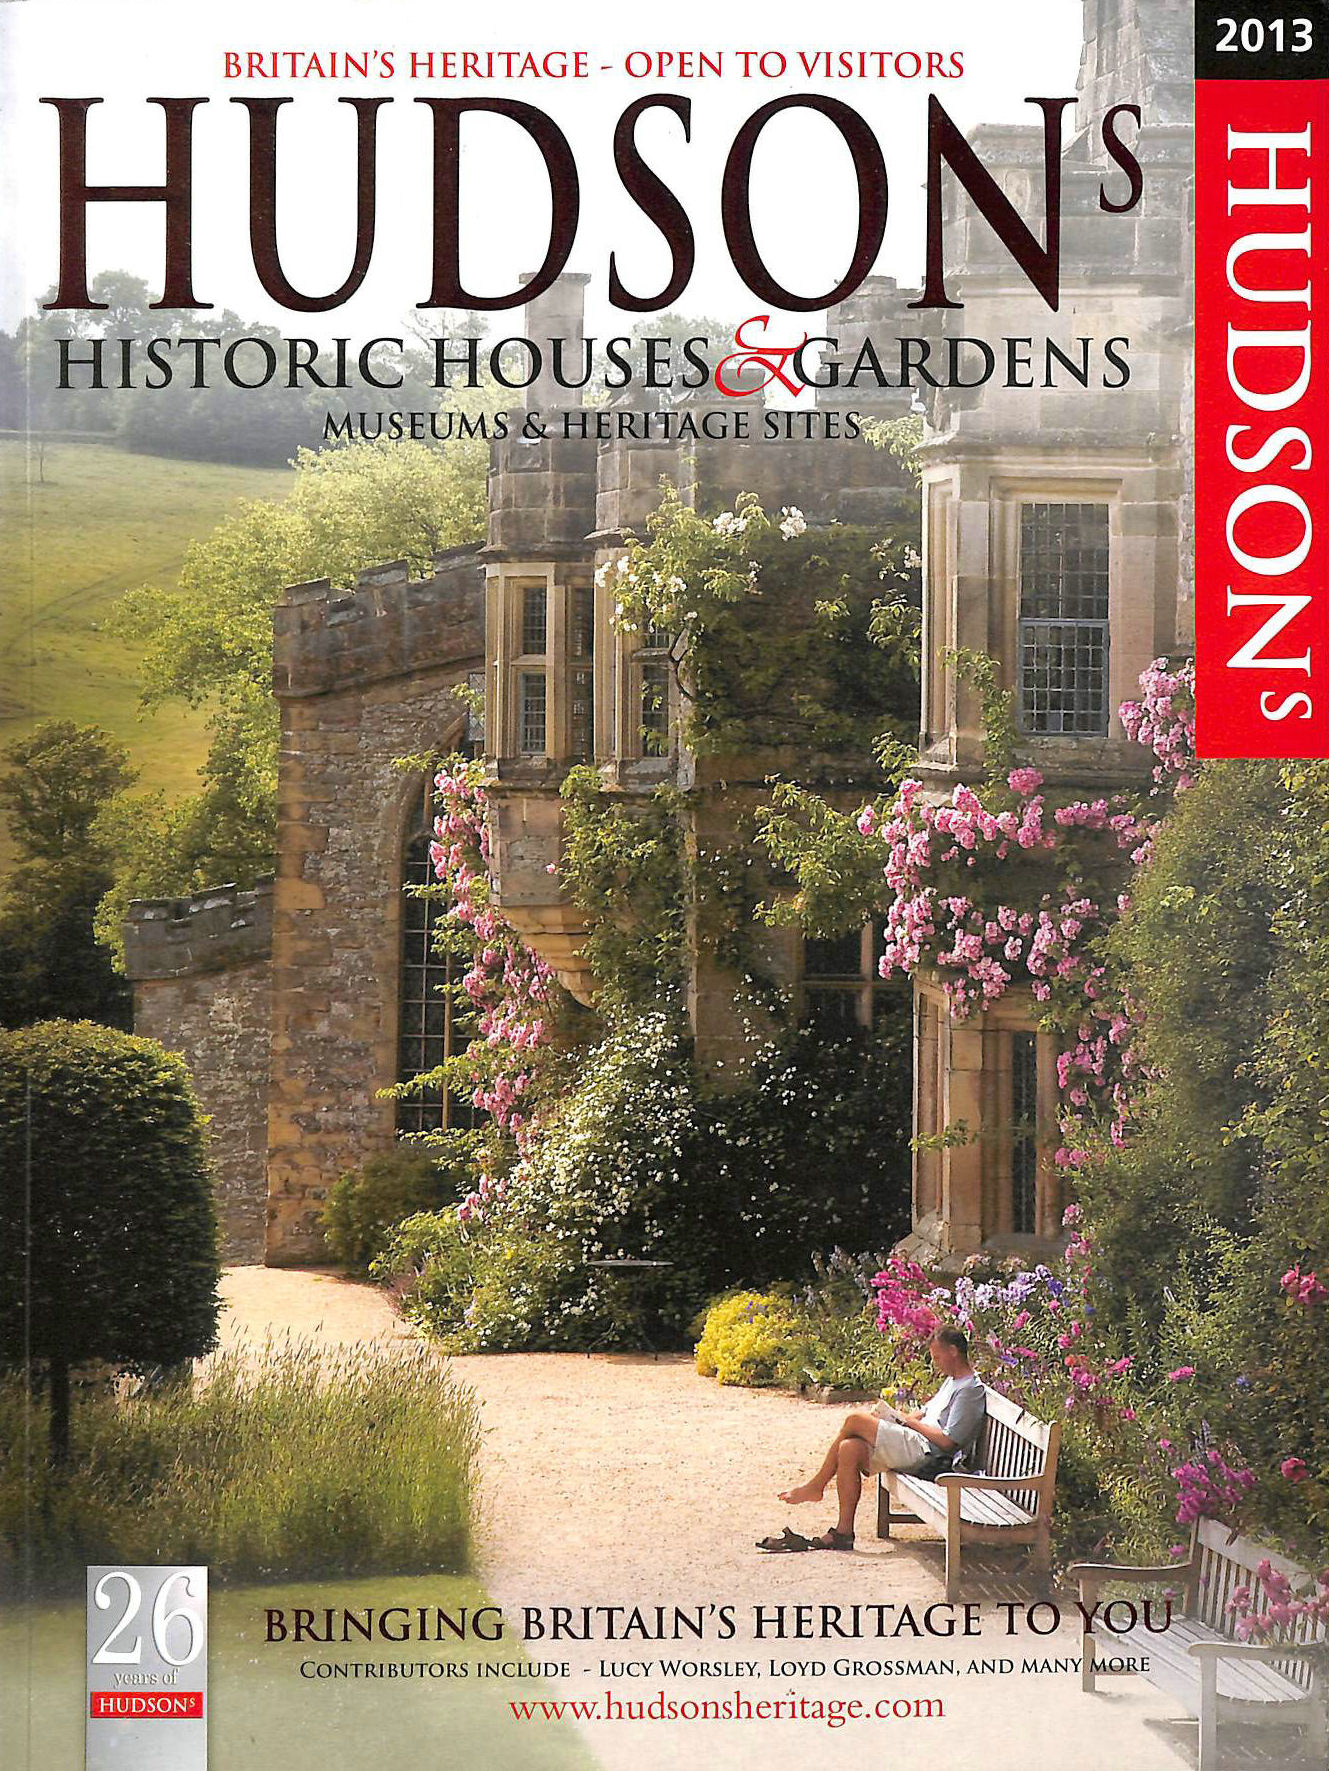 Image for Hudson's Historic Houses and Gardens, Castles and Heritage Sites 2013 (Hudsons Heritage)